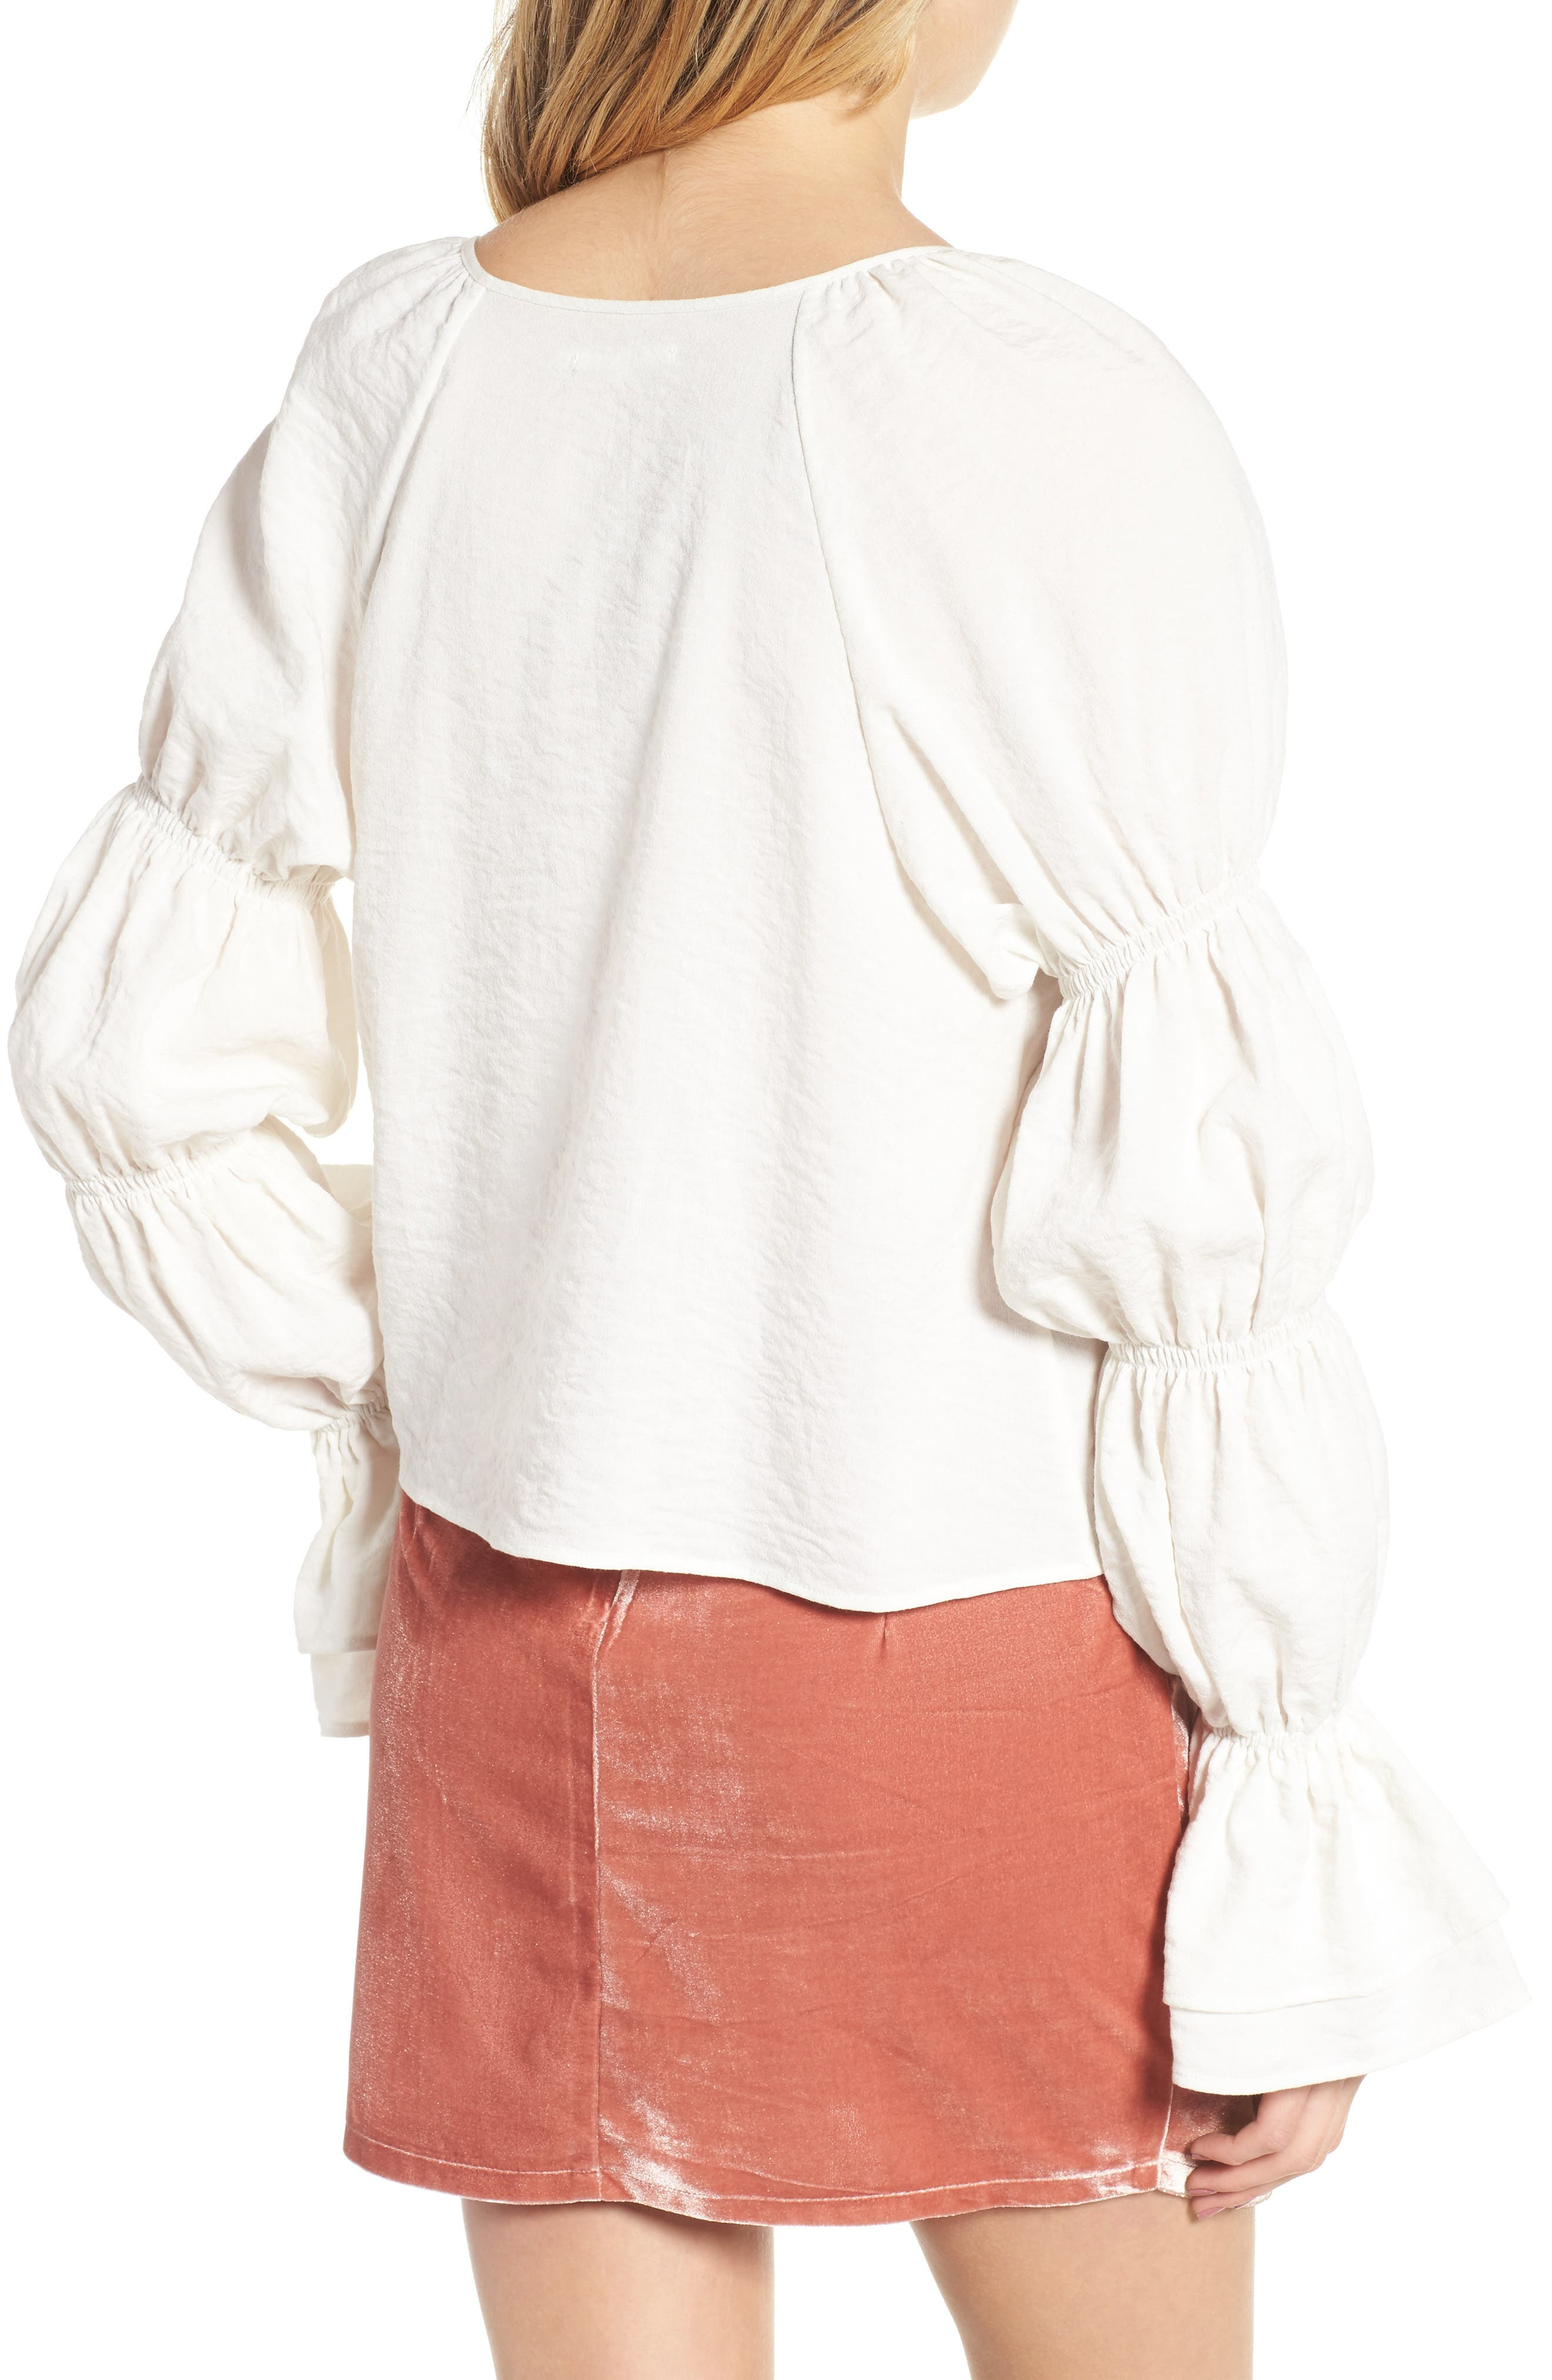 East Puff Sleeve Top,                             Alternate thumbnail 2, color,                             102